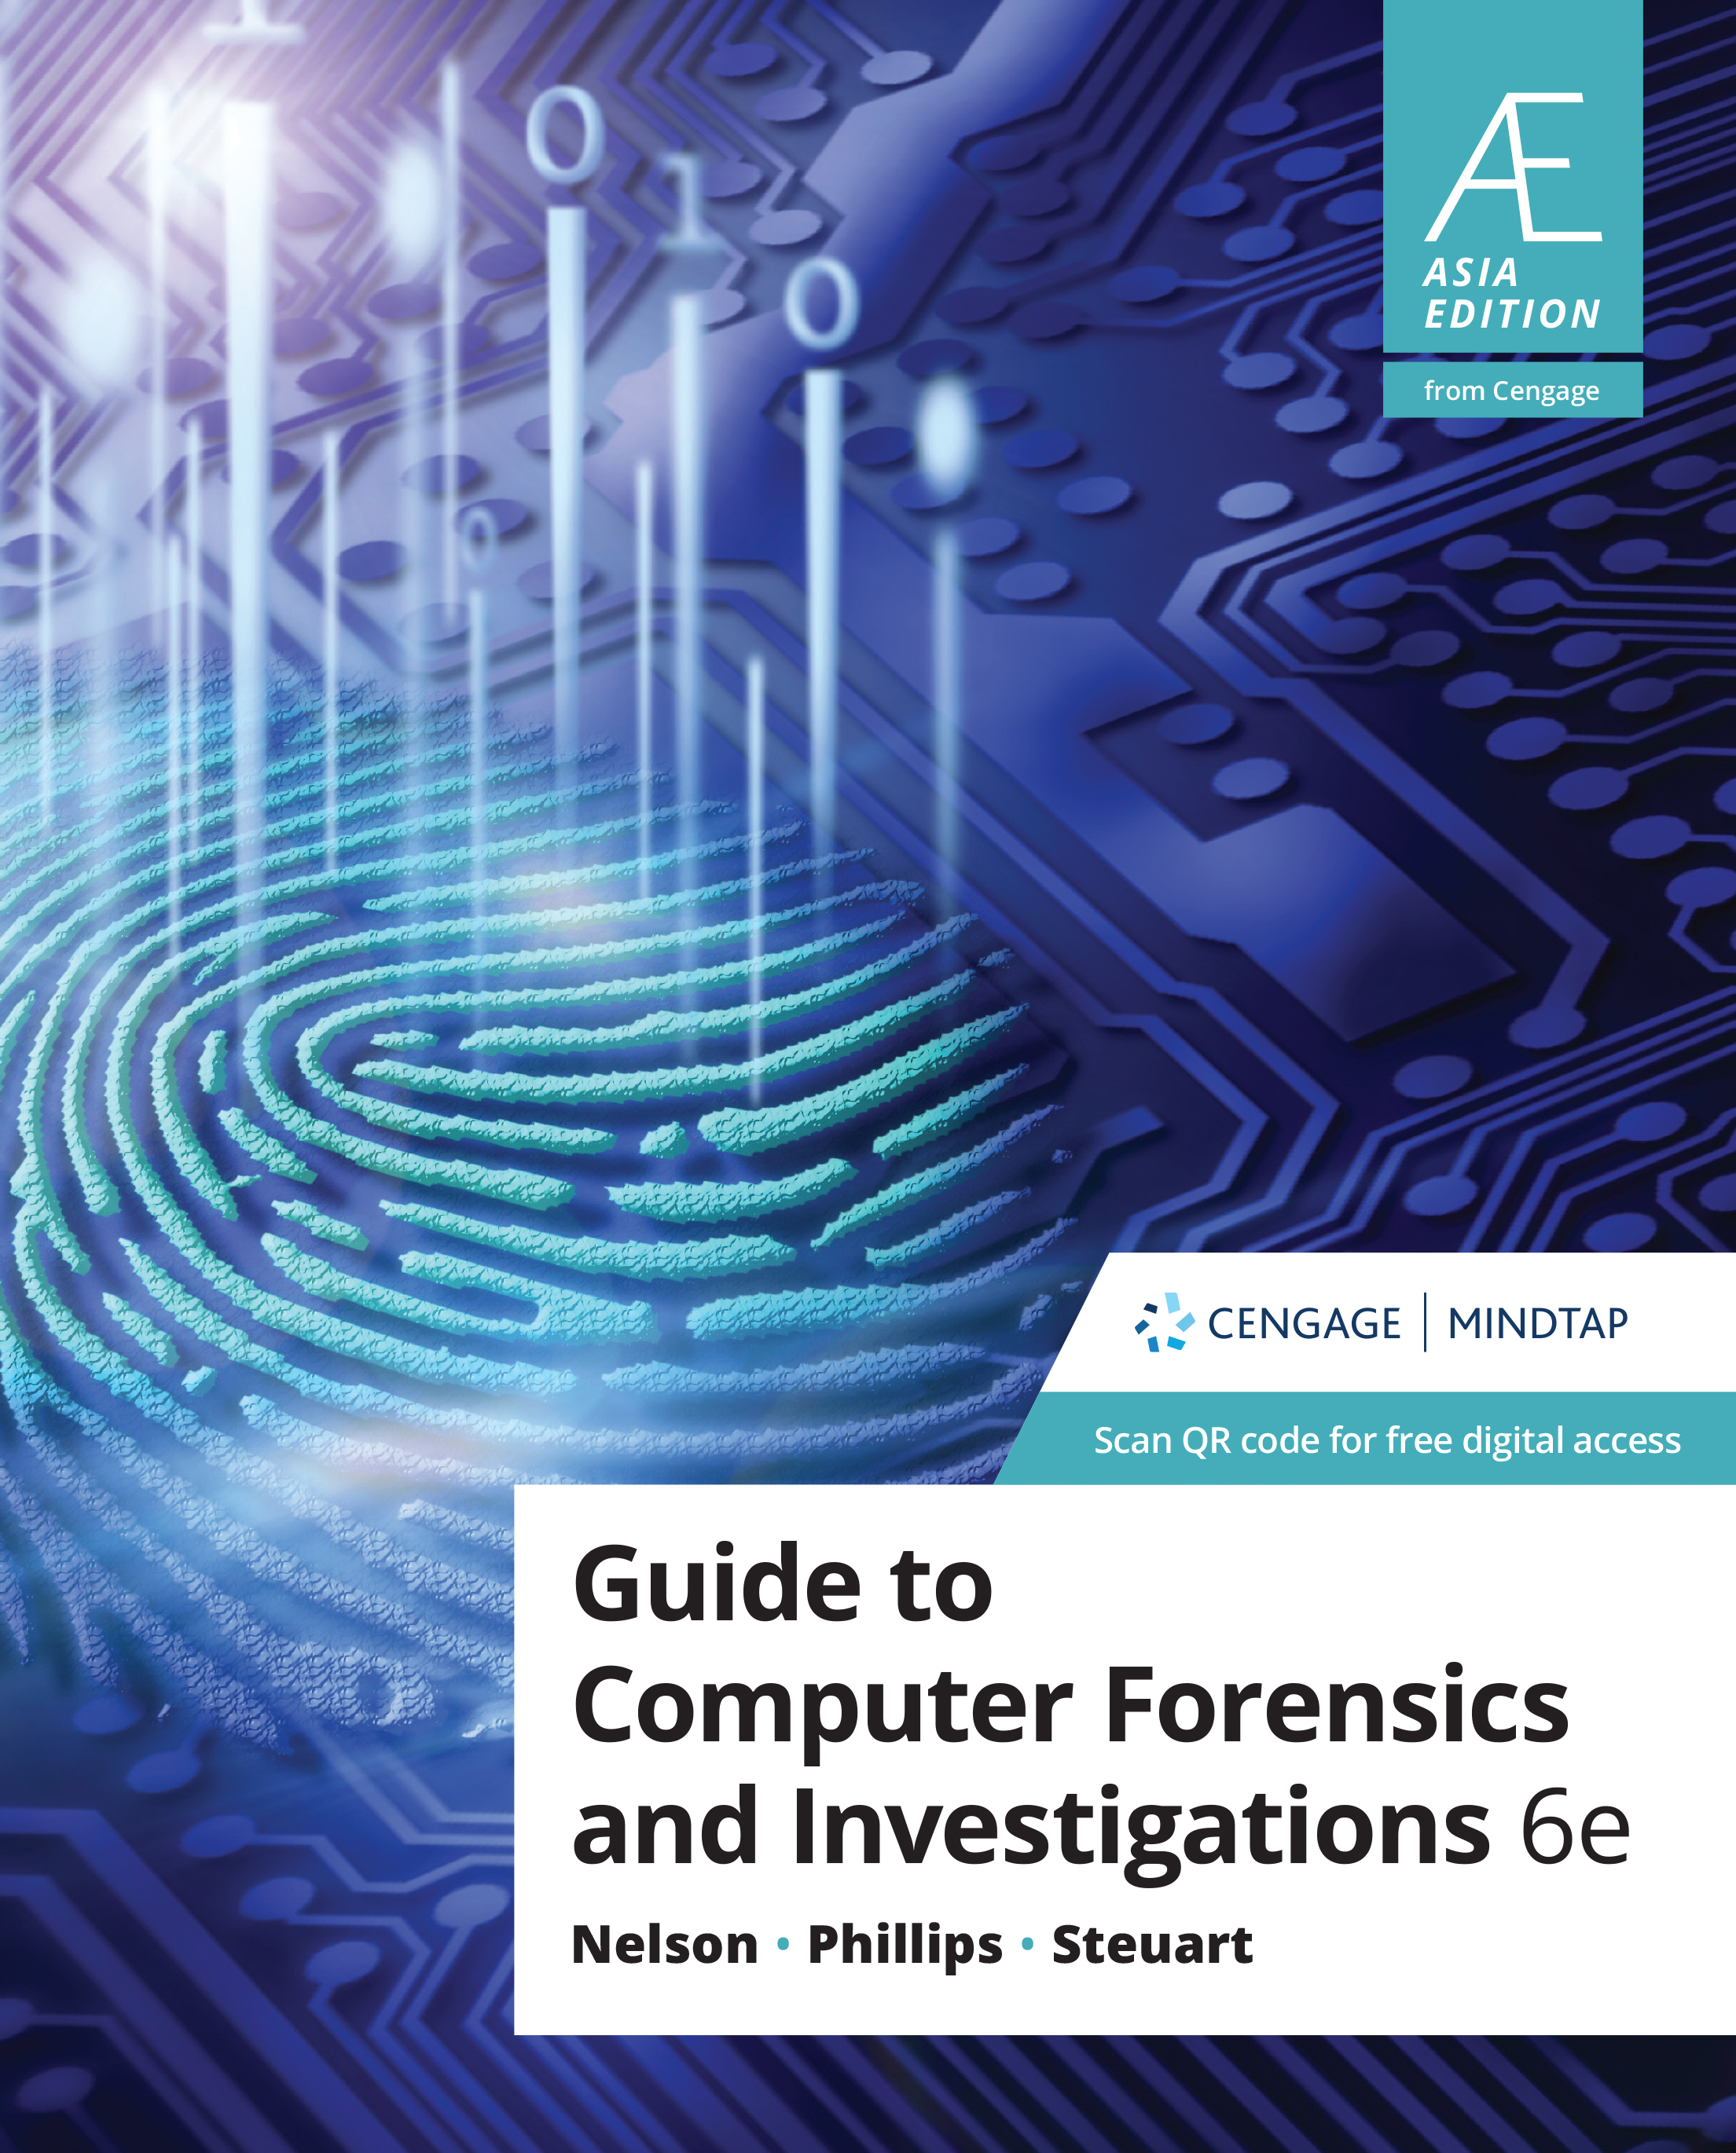 AE Guide to Computer Forensics and Investigations